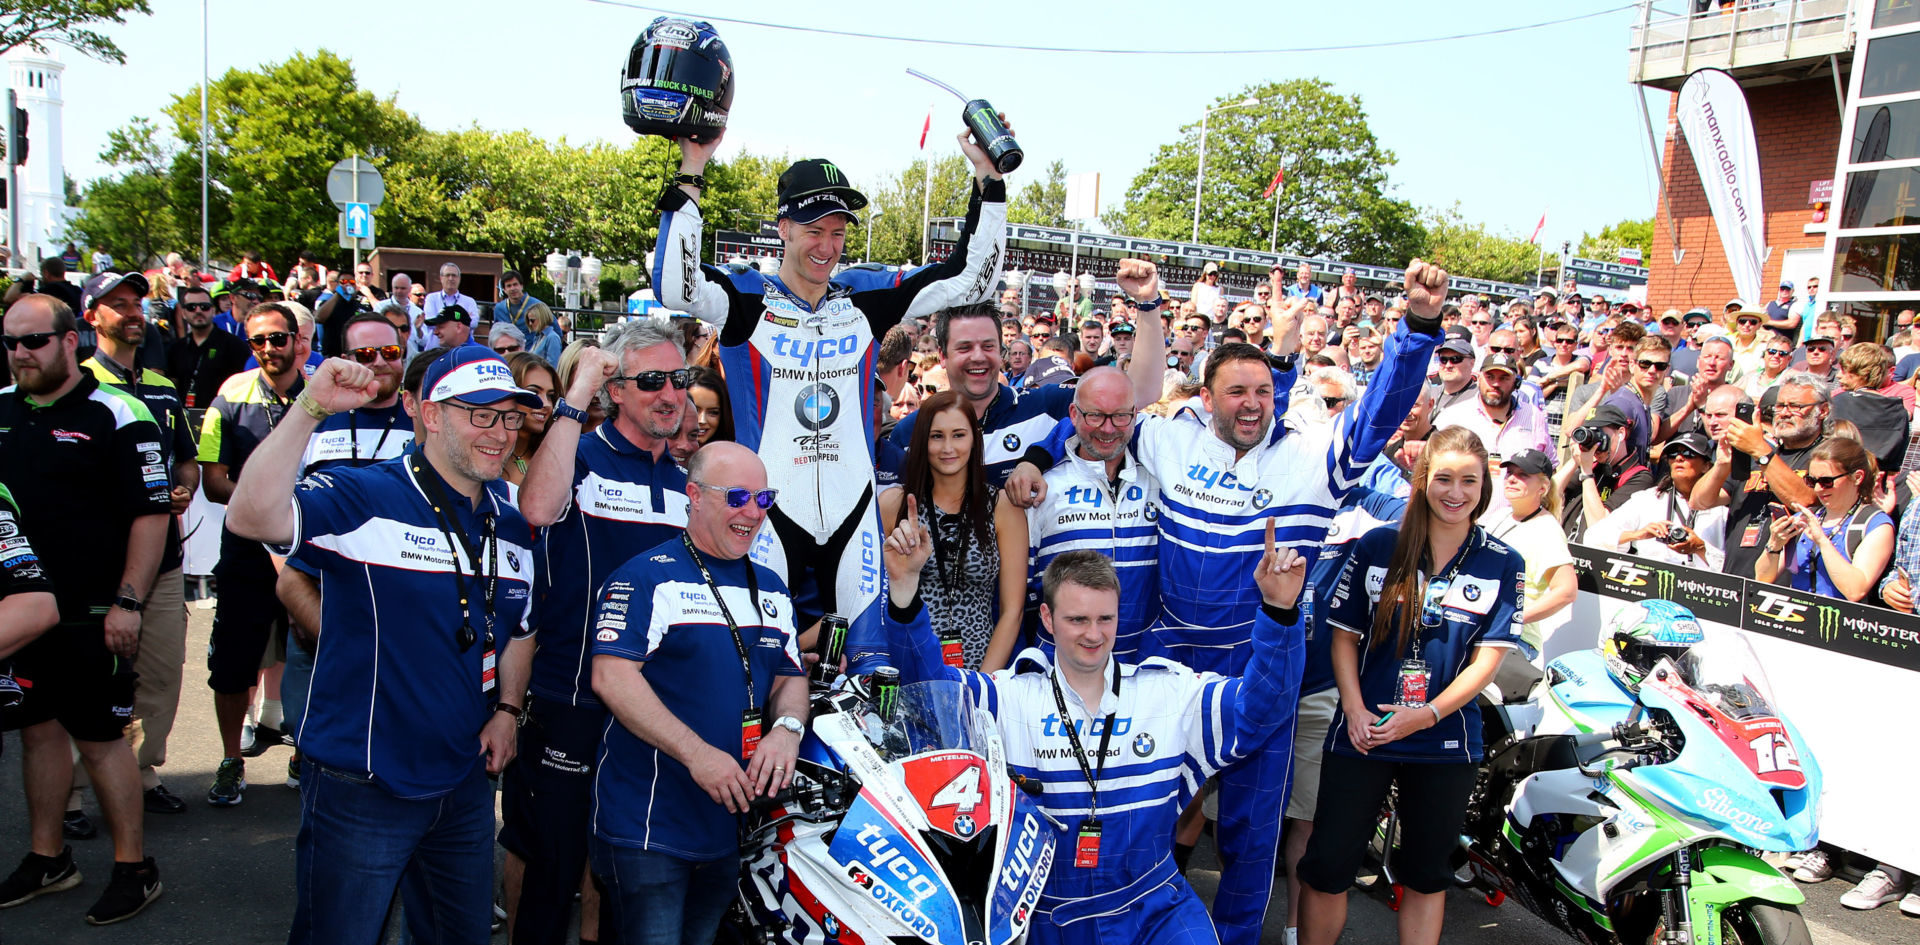 Ian Hutchinson and the TAS Racing team after winning a race at the Isle of Man in 2016. Photo courtesy BMW Motorrad Motorsport.